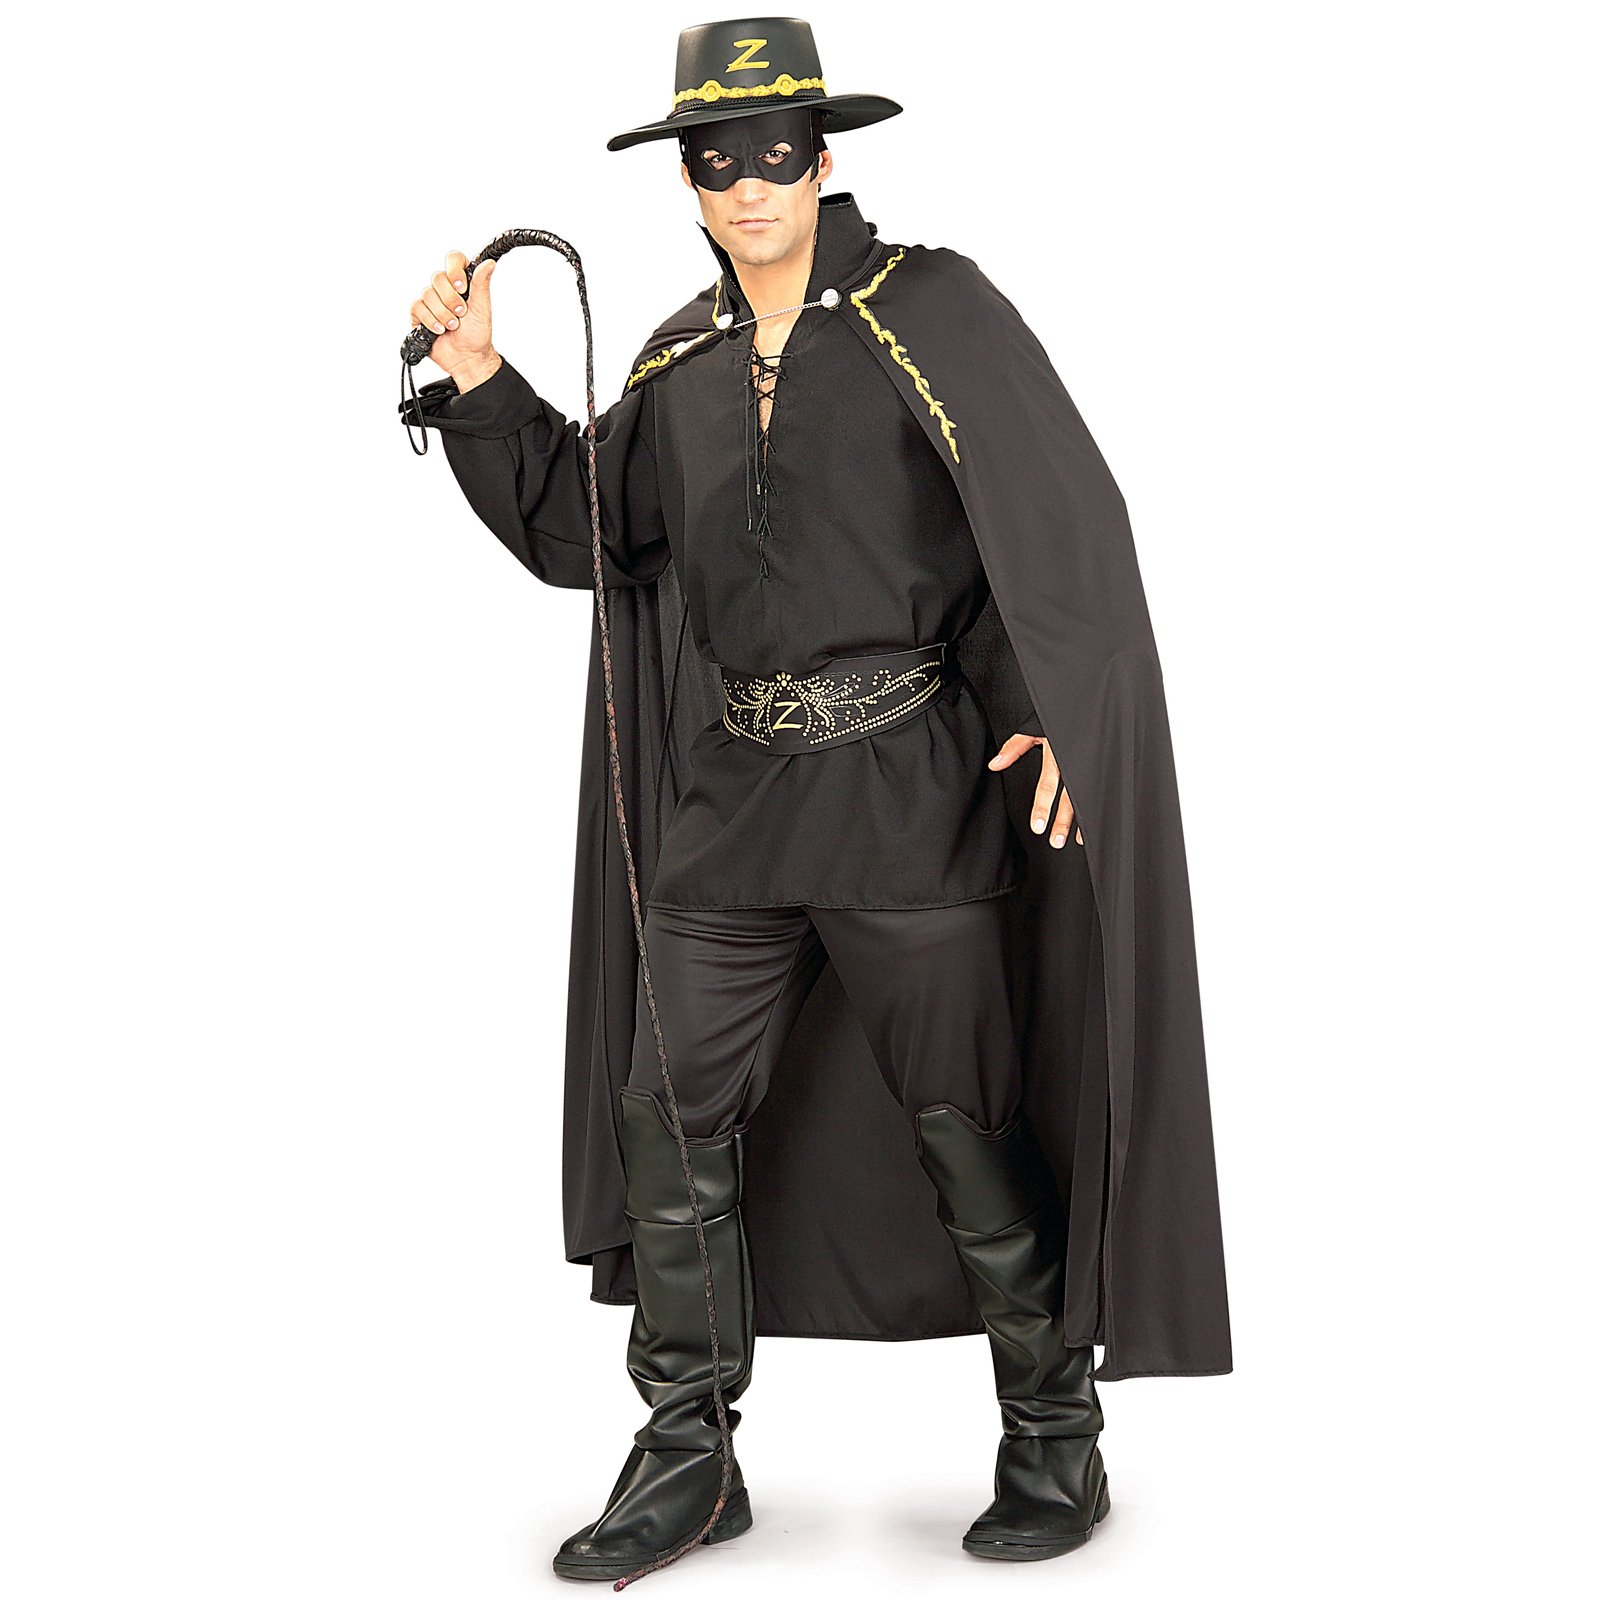 A73 Zorro Bullwhip With Sound Fancy Dress Halloween